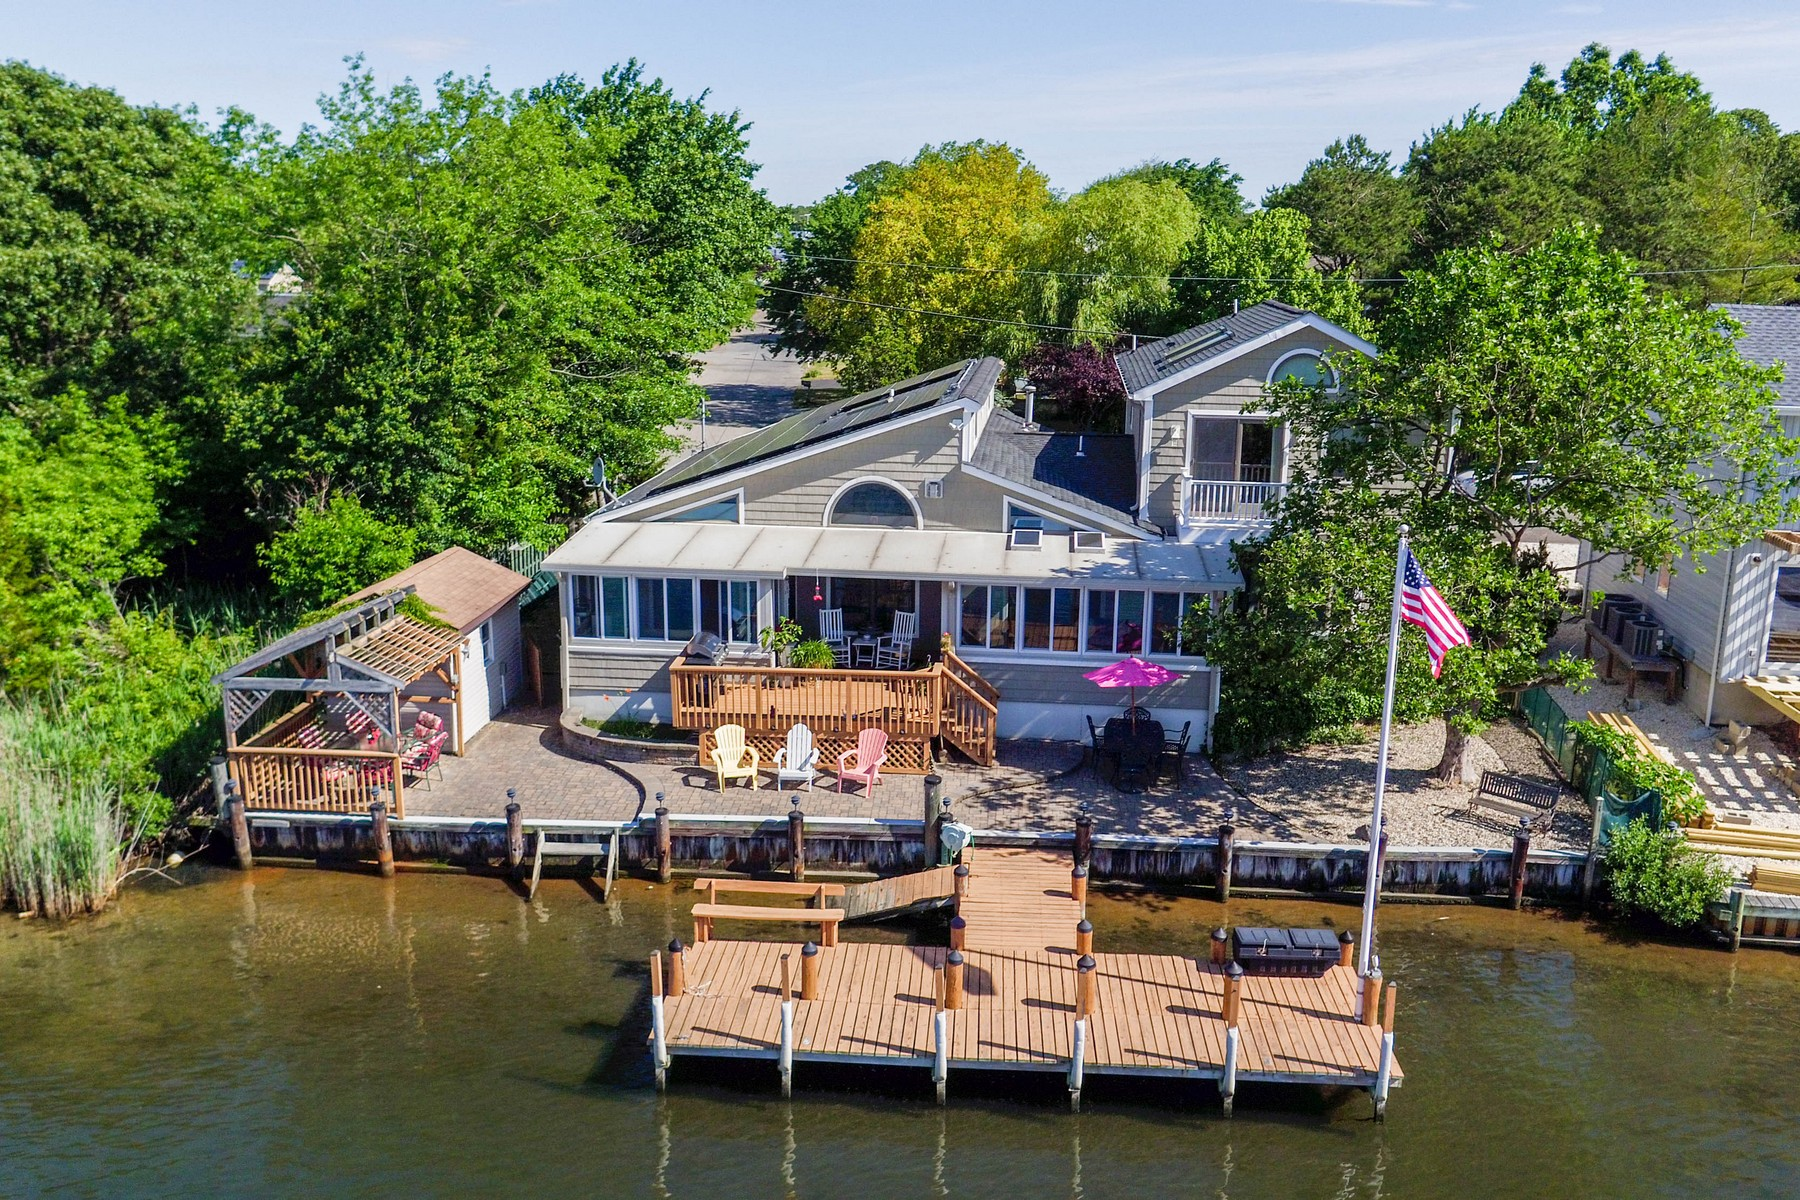 Single Family Home for Sale at Private Waterfront Location 501 N Shore Dr Forked River, 08731 United States